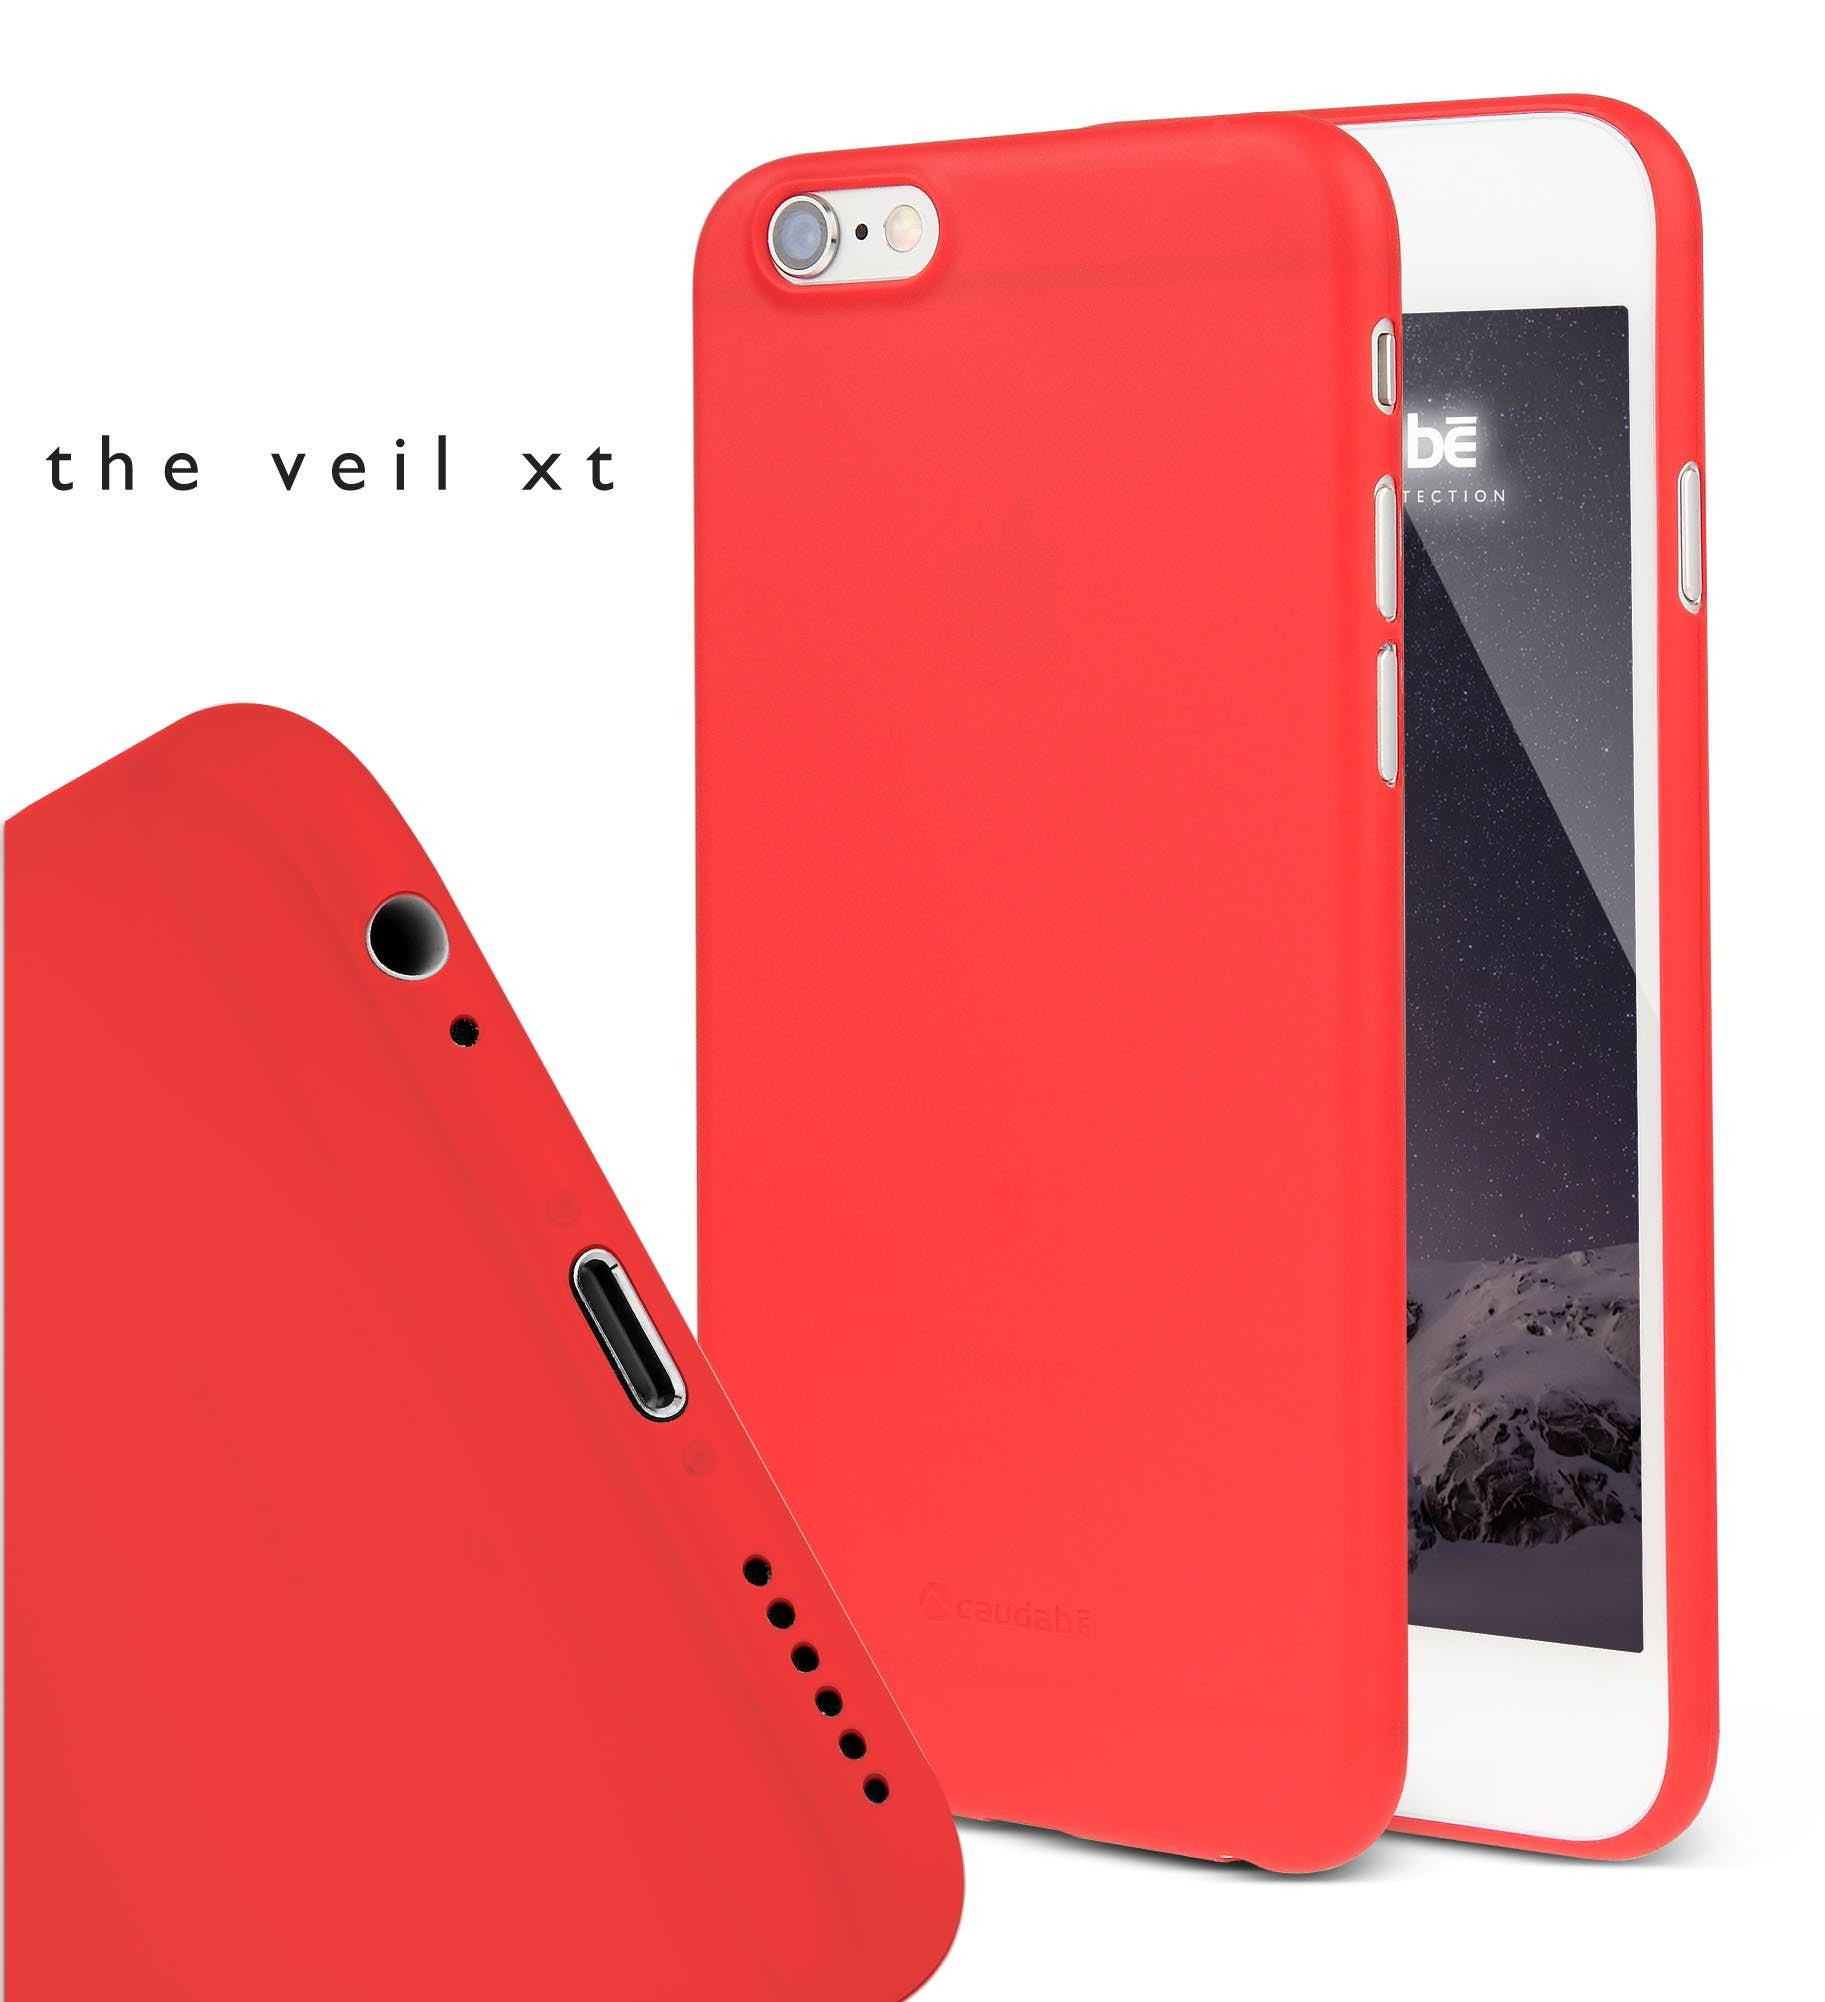 The Veil XT - iPhone 6 Plus — Red